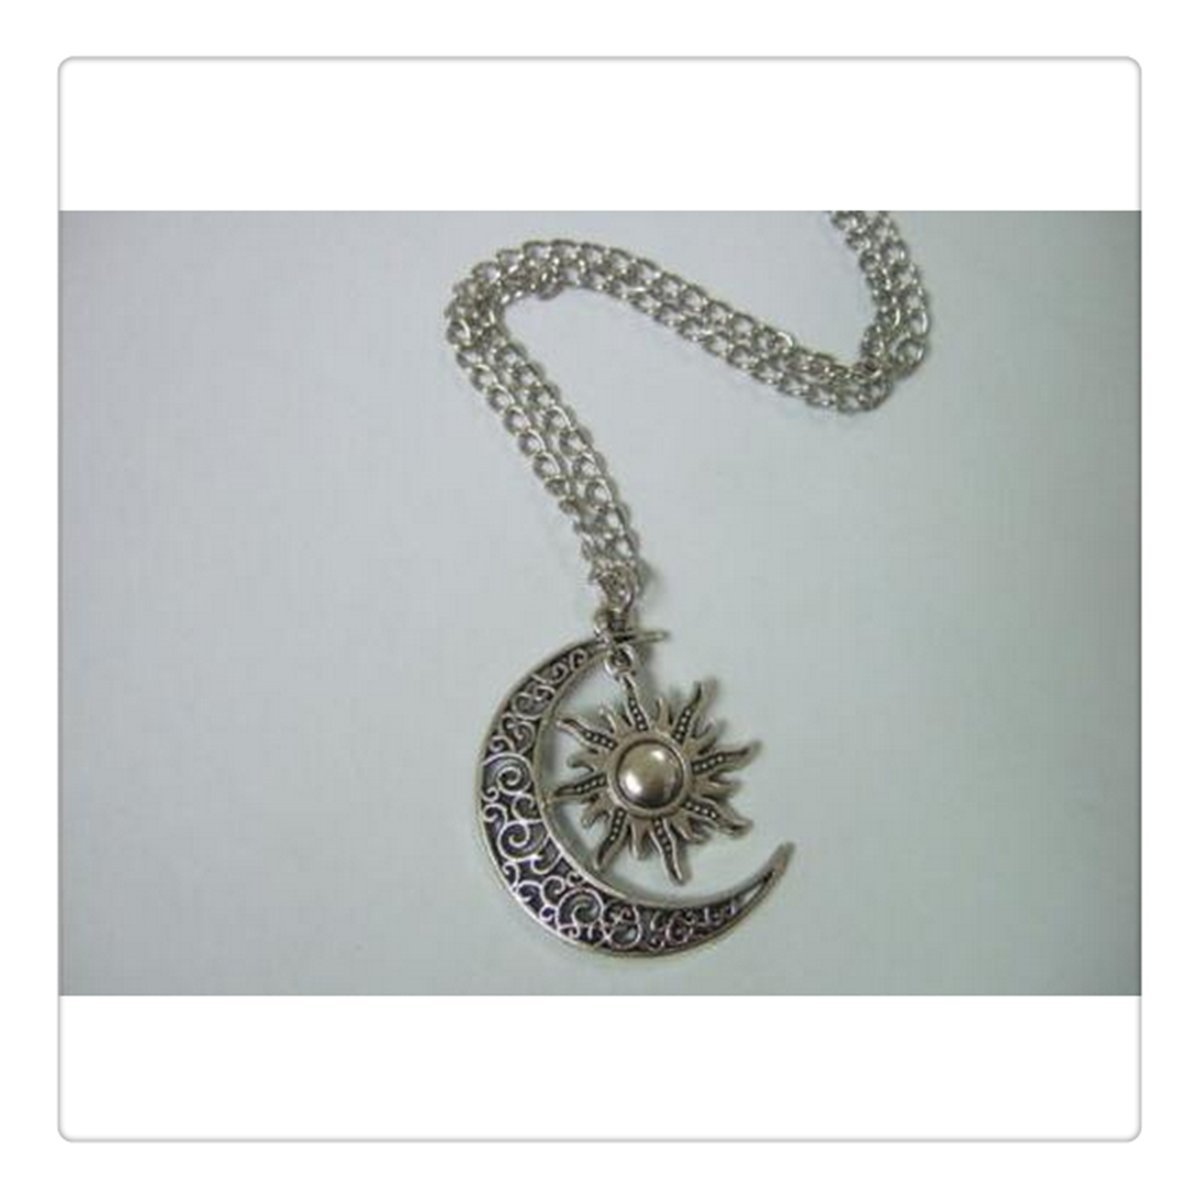 Moon and Sun Necklace Moon Necklace Sun Pendant Necklace BFF Graduation Gift (1)